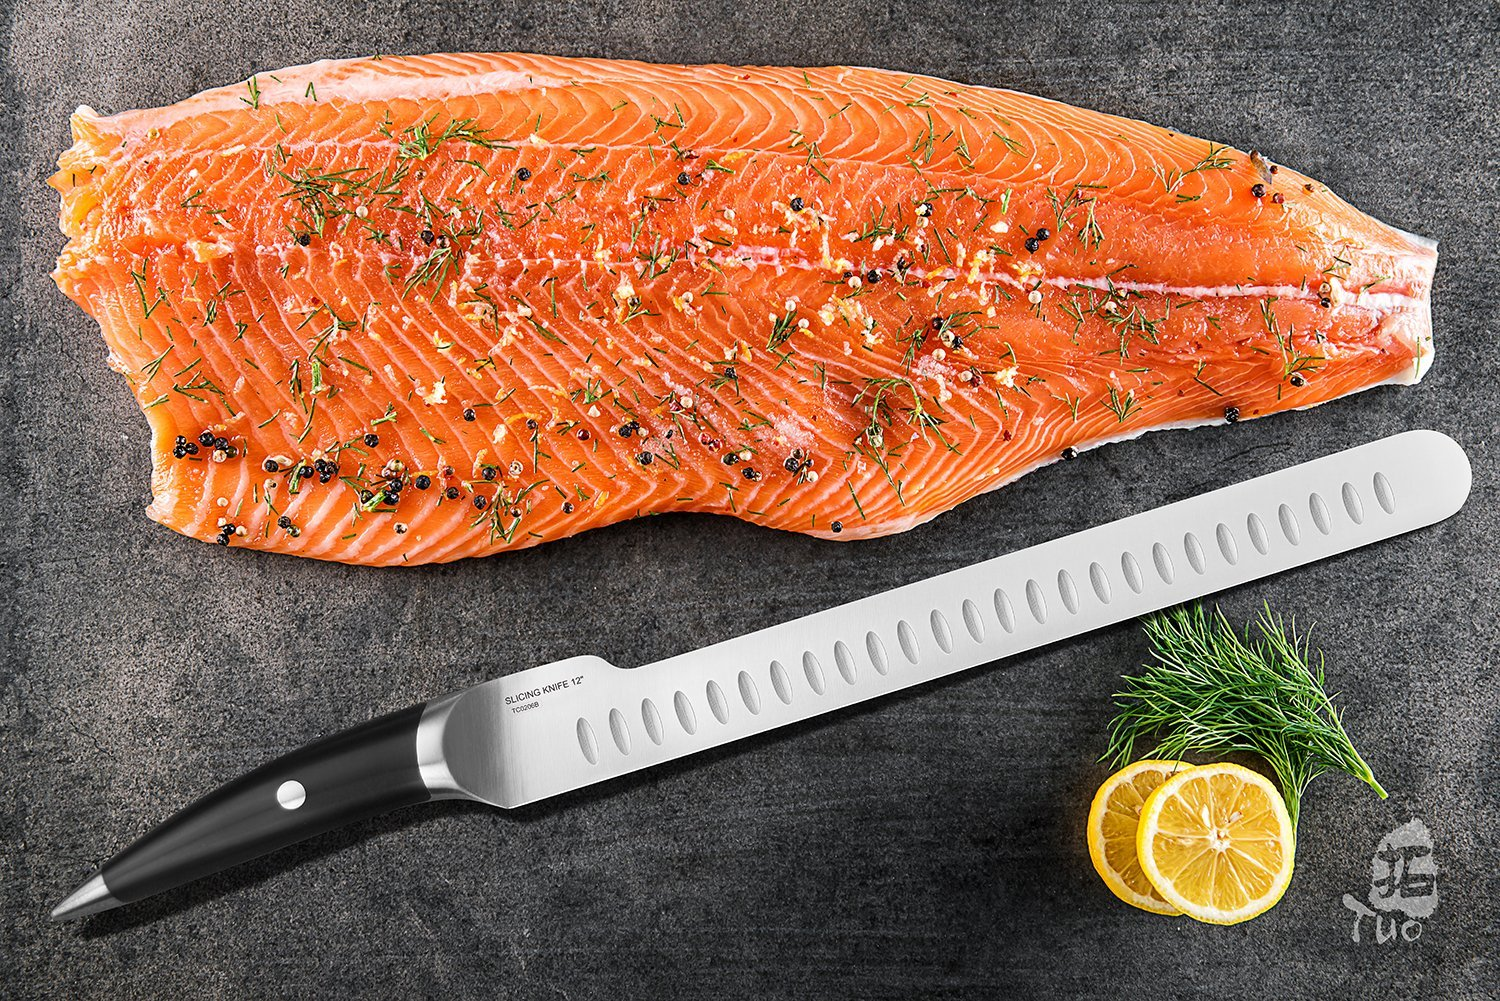 Best Carving Knife And Slicing Knife To Buy All Knives